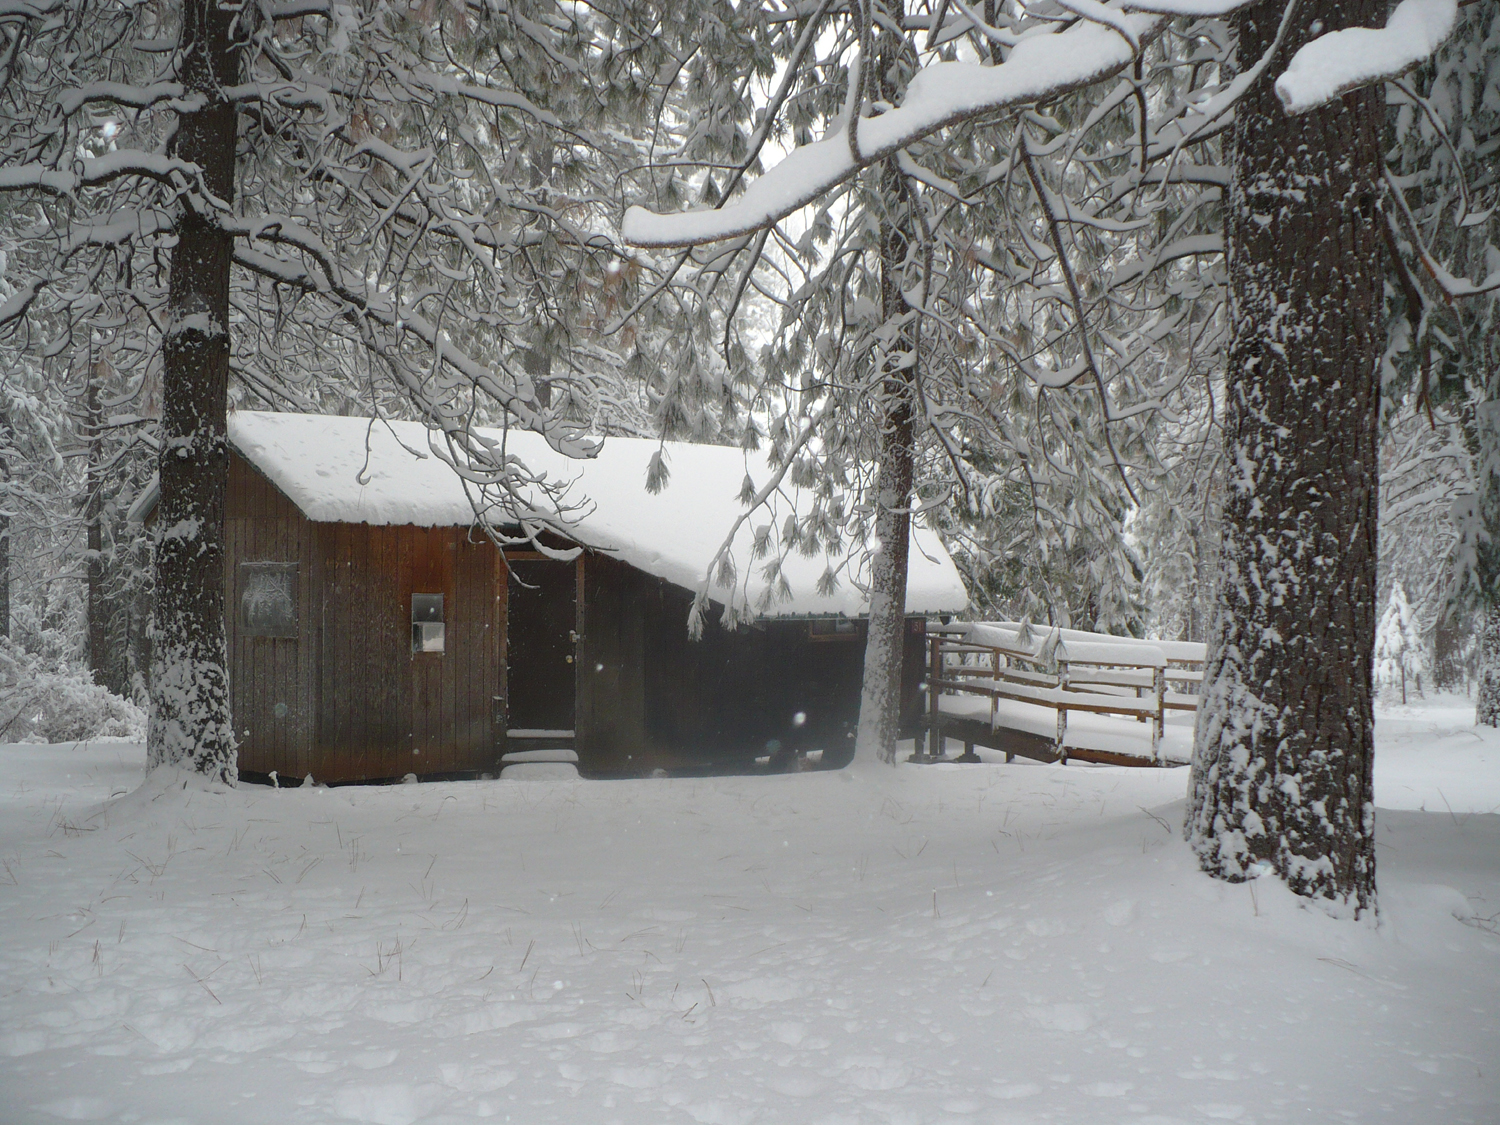 Cabins are winterized with heaters